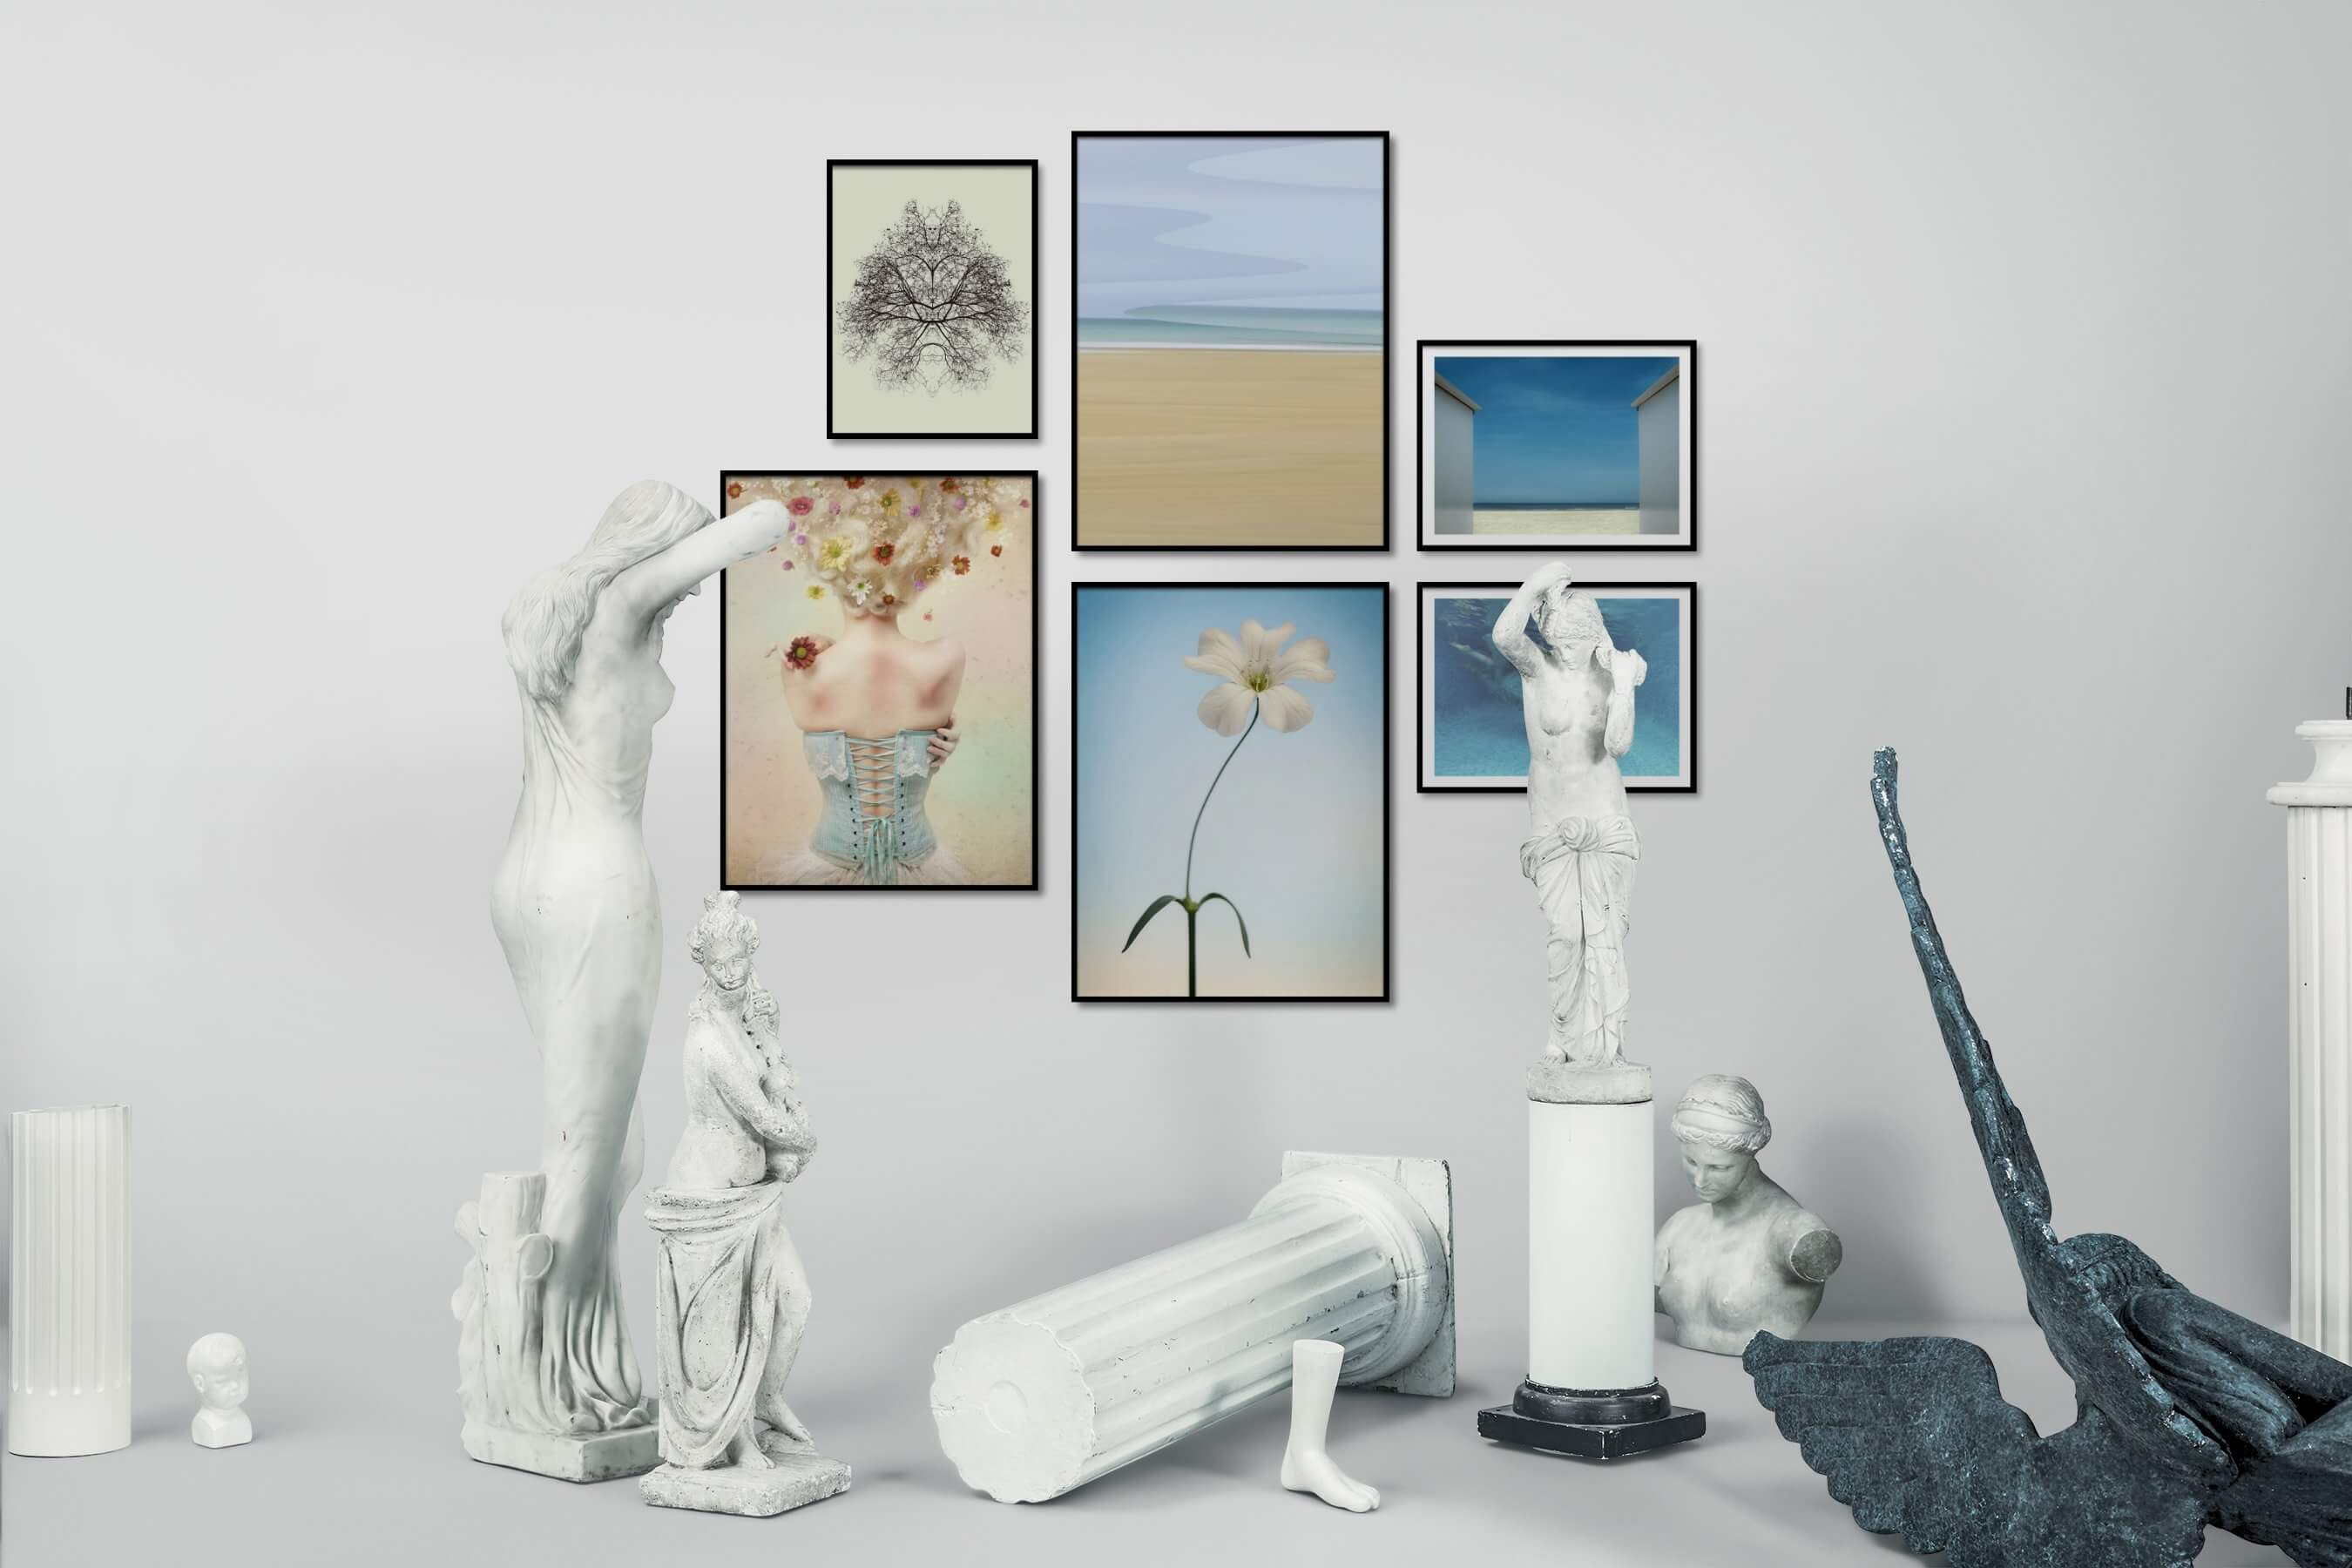 Gallery wall idea with six framed pictures arranged on a wall depicting For the Minimalist, Flowers & Plants, Mindfulness, For the Moderate, Beach & Water, Fashion & Beauty, and Colorful